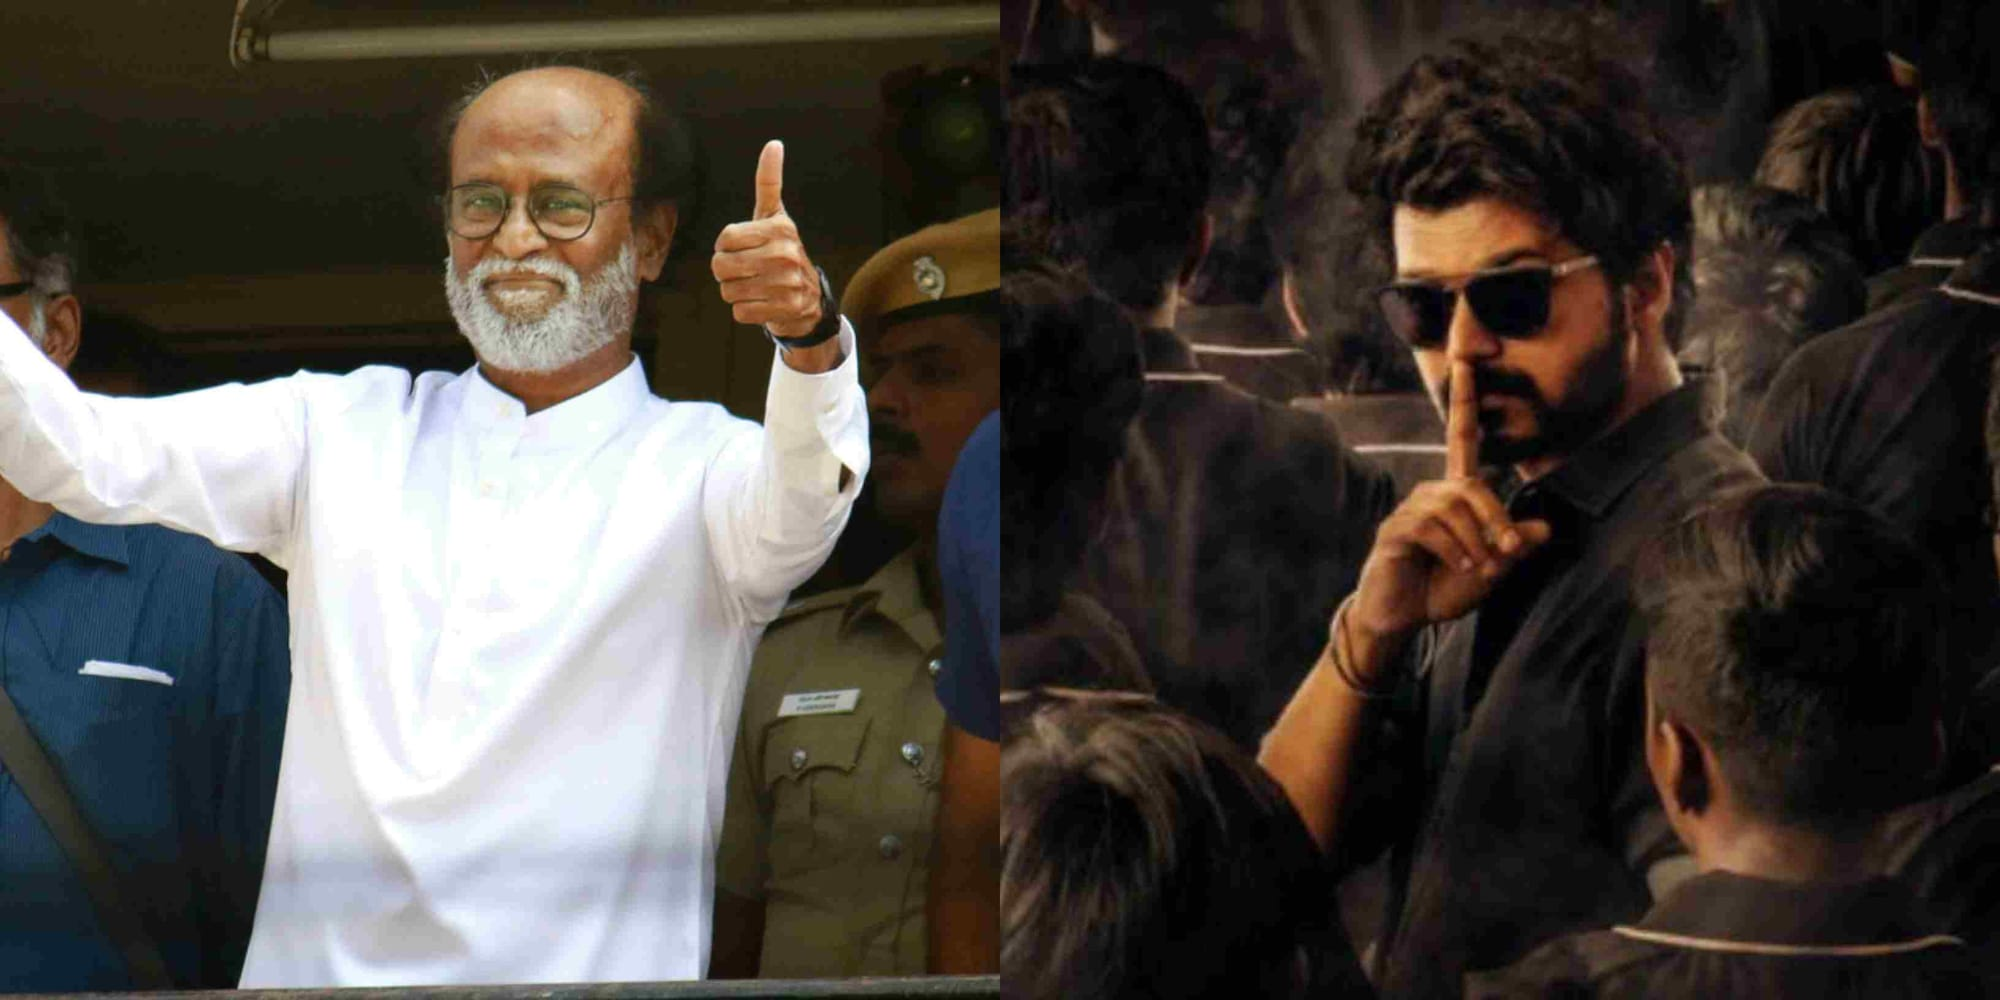 Most awaited Tamil films of 2020, from Rajinikanth's untitled film to Vijay's Master and Soorarai Pottru- Entertainment News, Firstpost